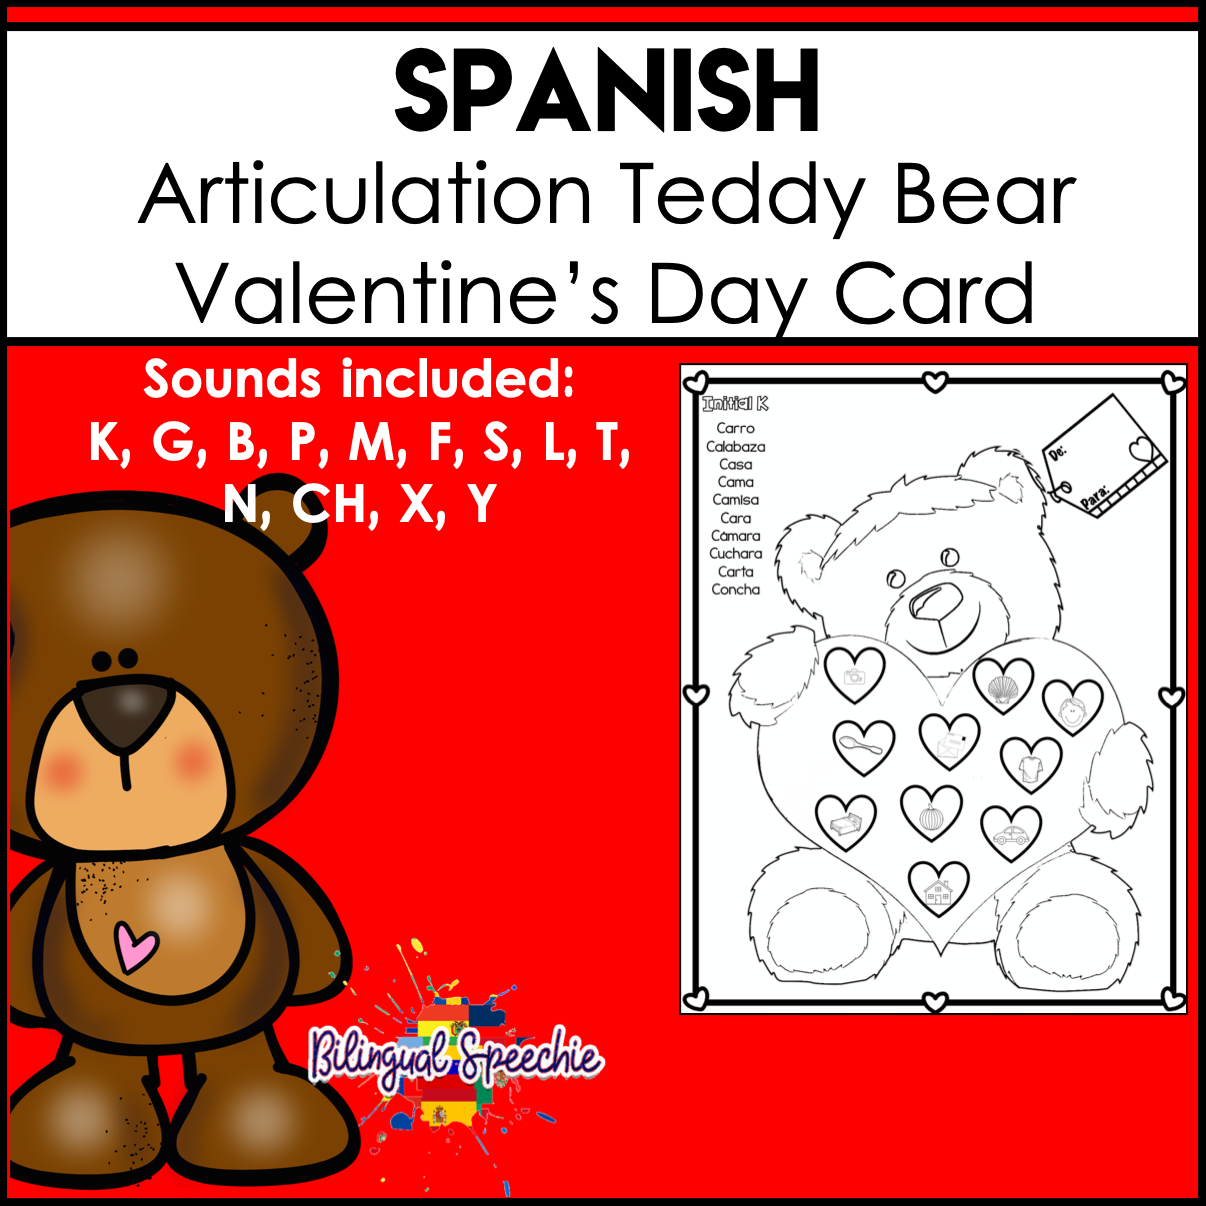 Spanish Articulation | Teddy Bear Valentine's Day Card